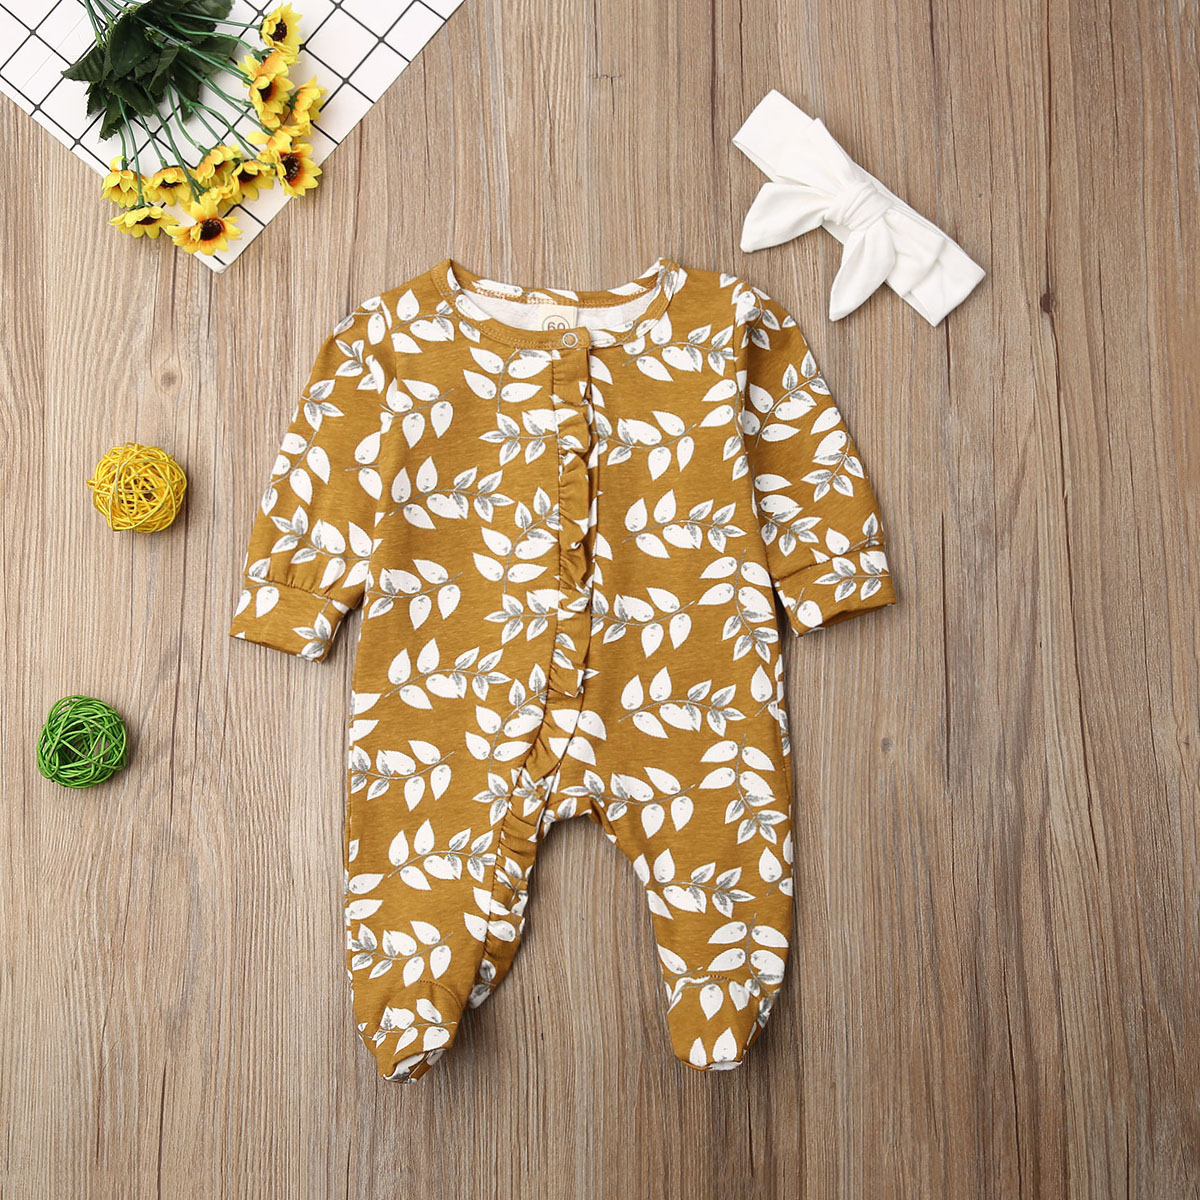 Pudcoco Newborn Baby Girl Clothes Long Sleeve Wheat Spike Print Cotton Romper Jumpsuit Headband 2Pcs OutfitS Soft Clothes Autumn